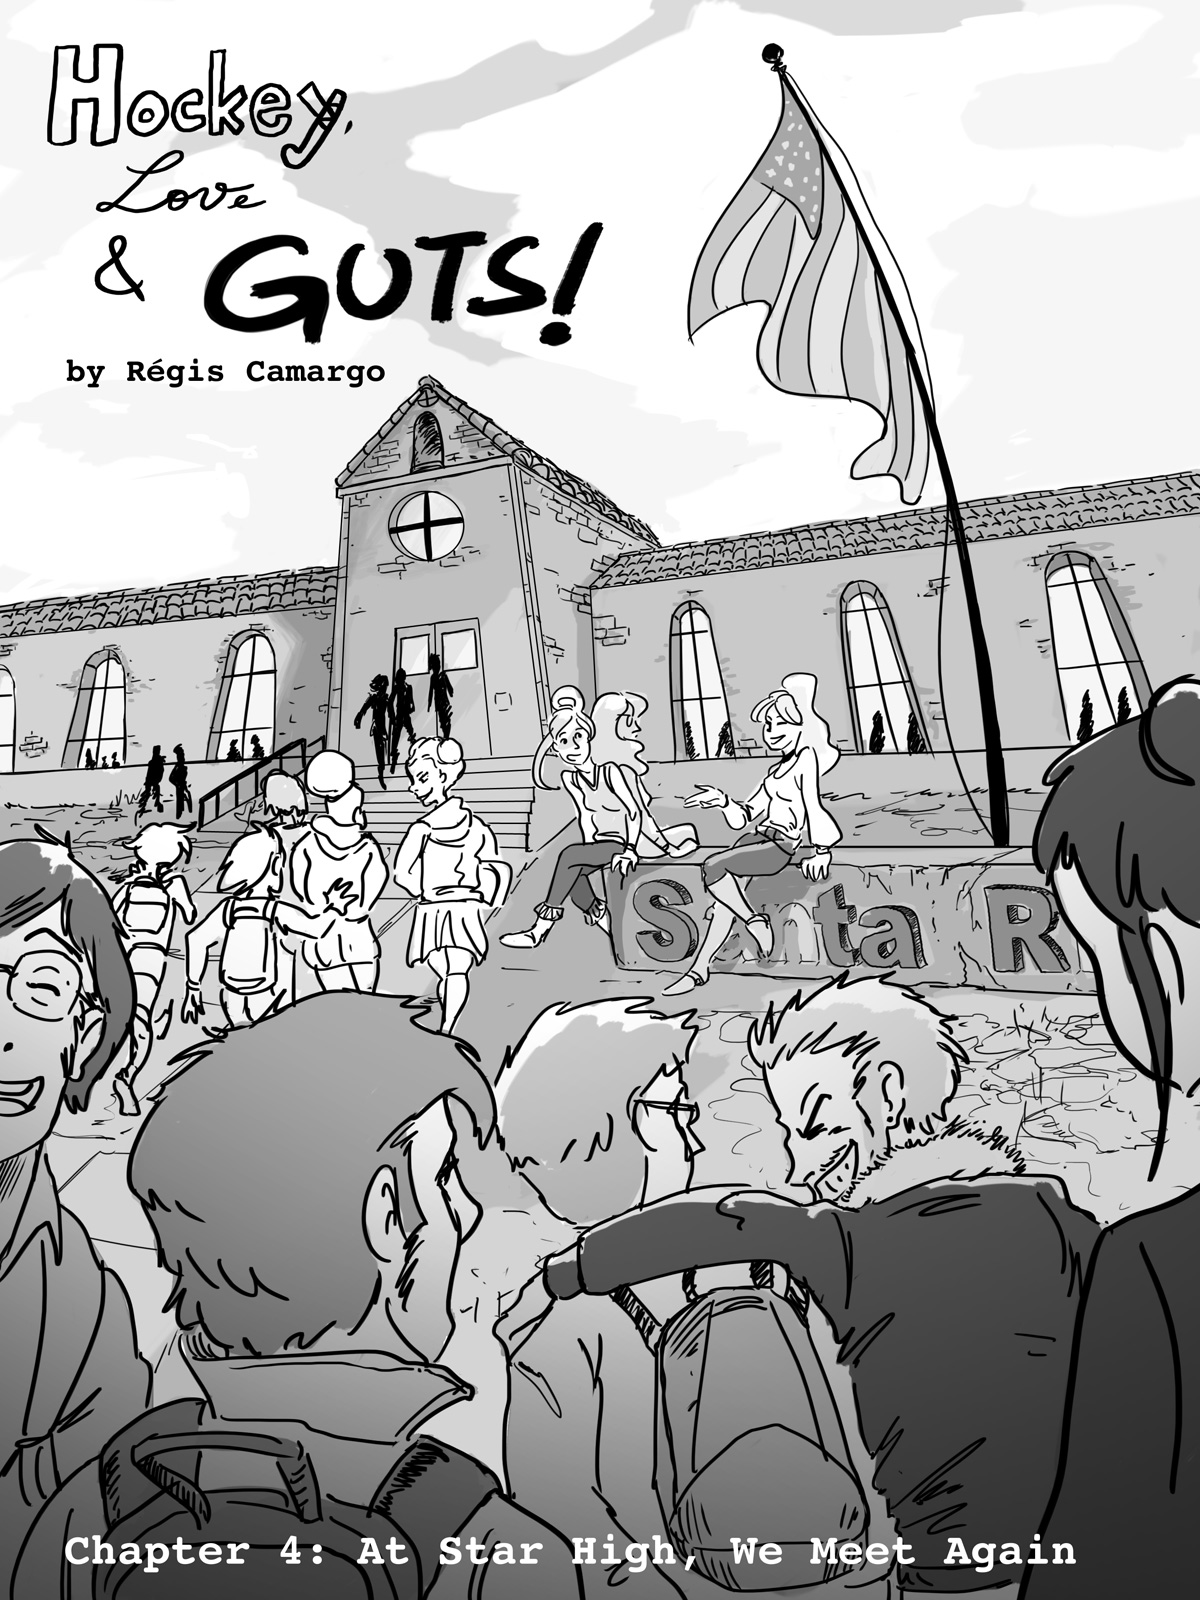 Hockey, Love, & GUTS! – Chapter 4 – Page 44